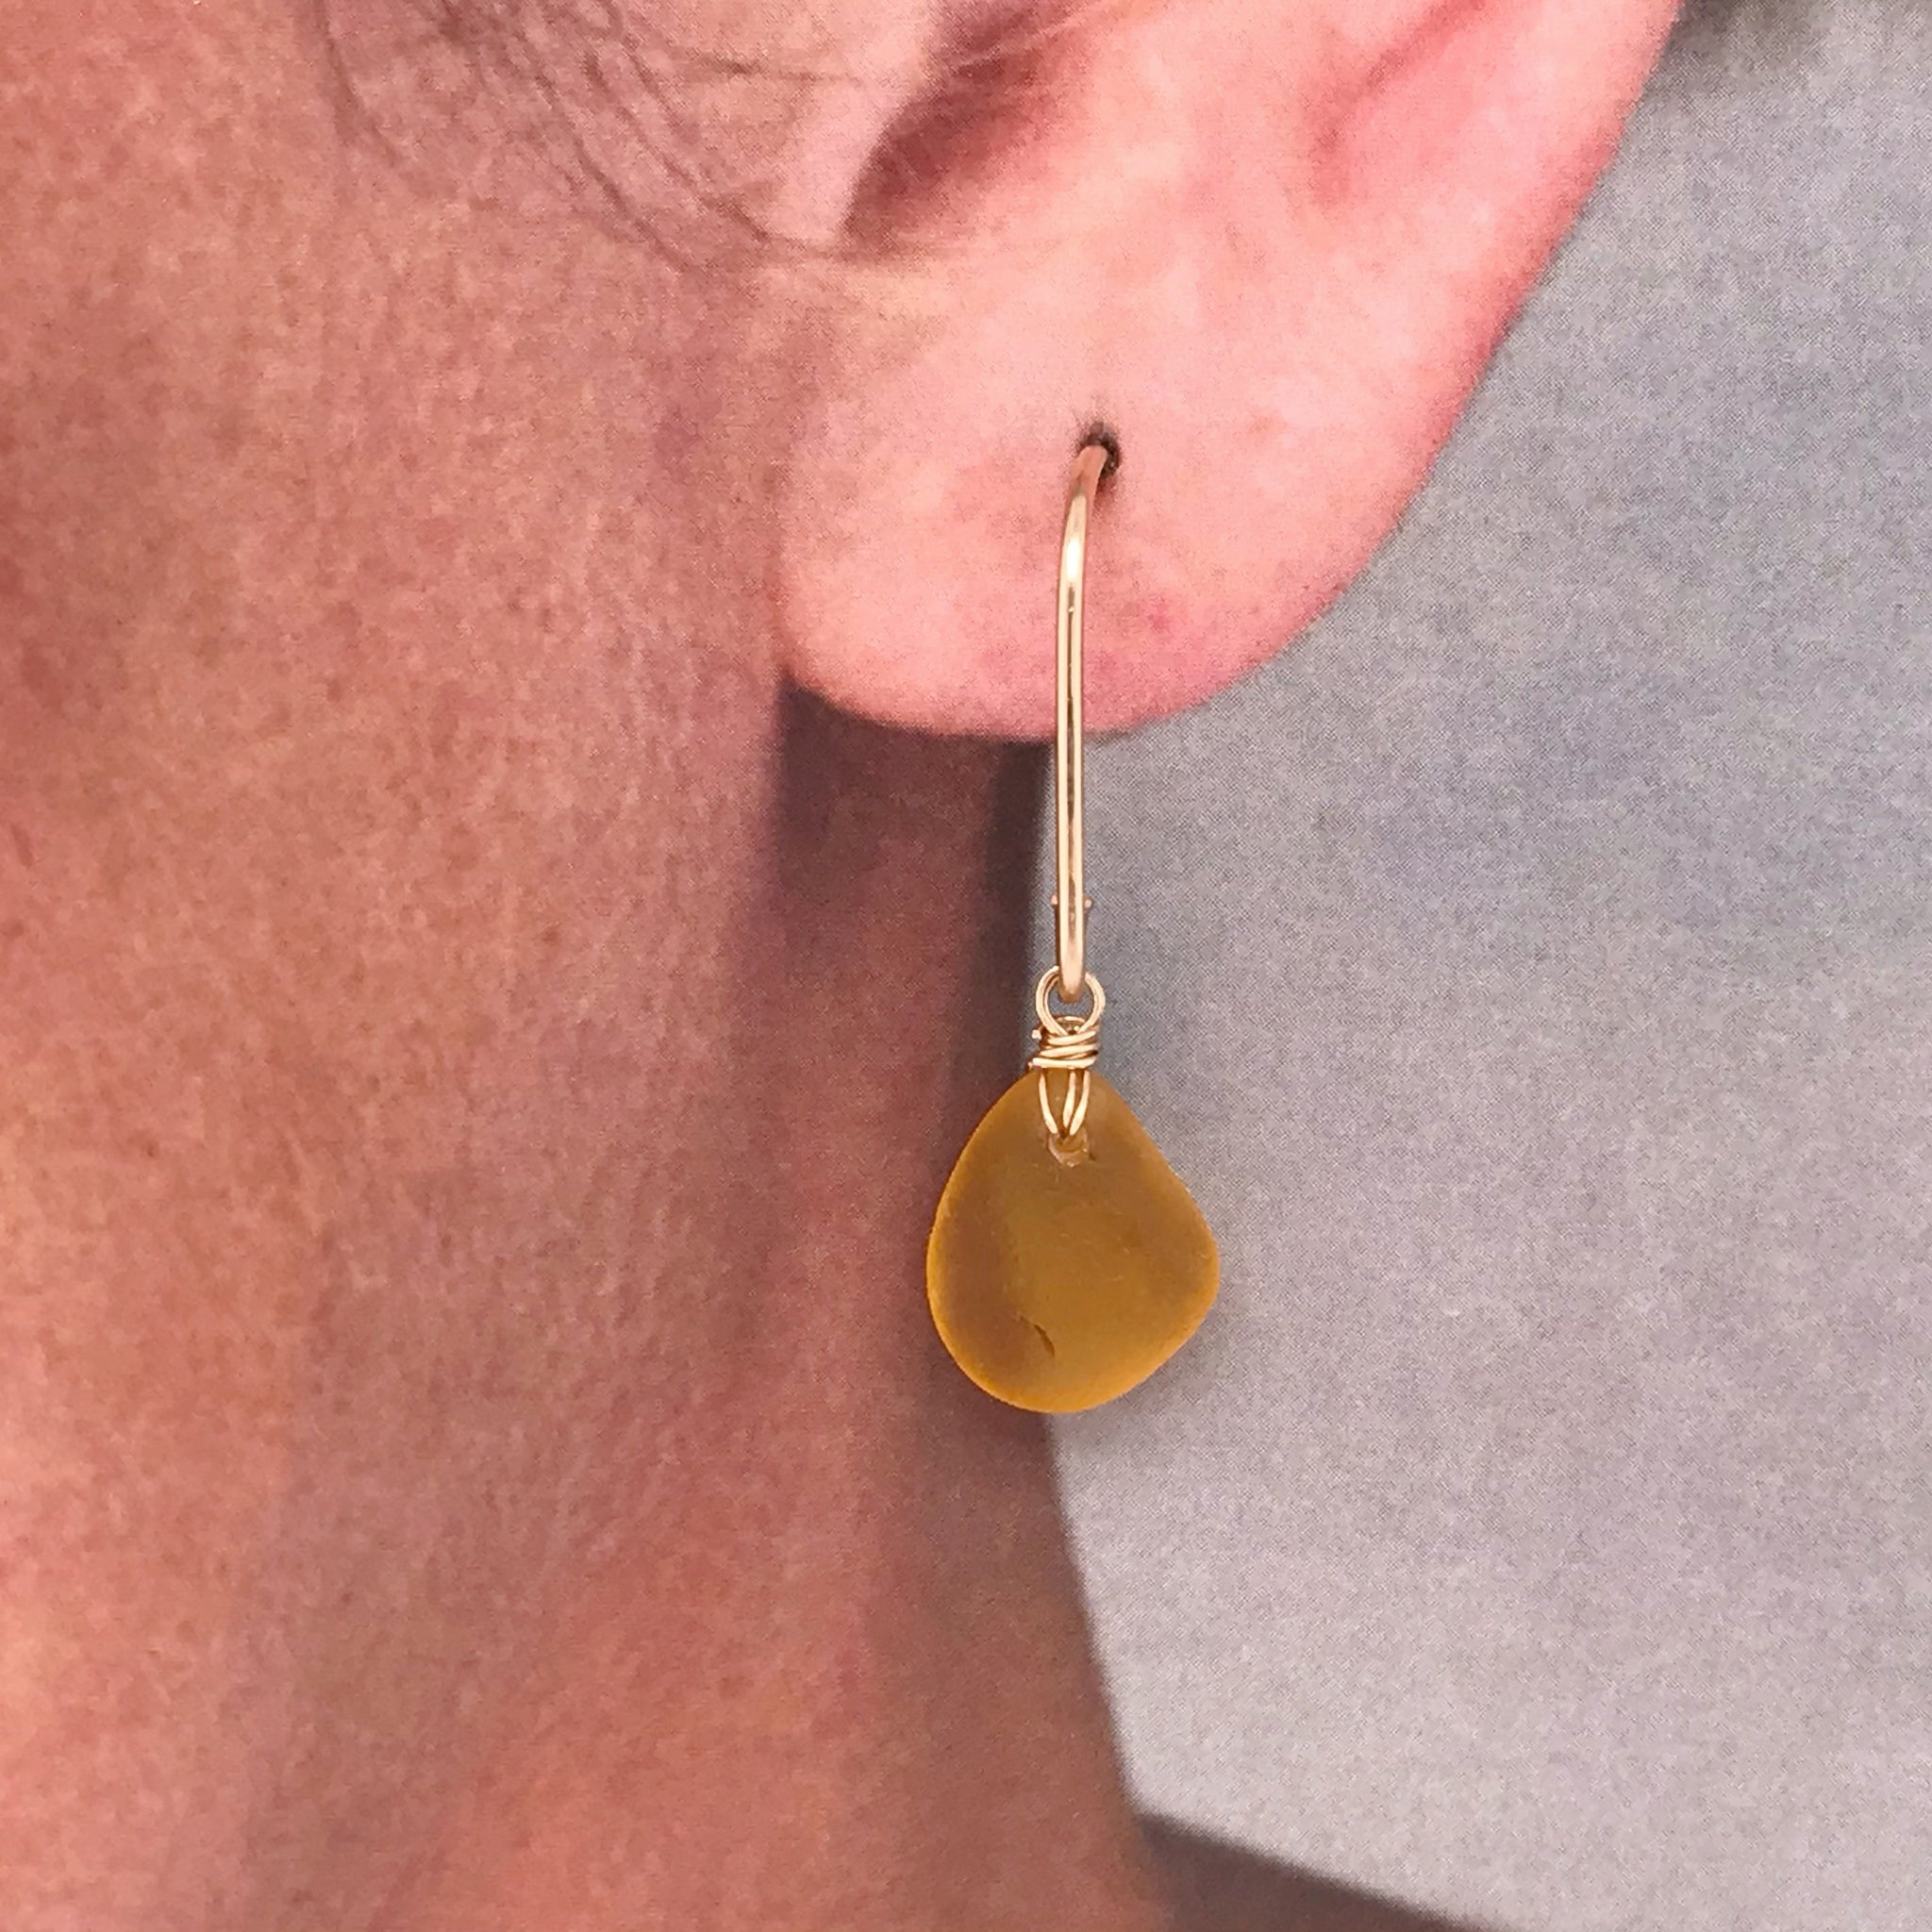 amber seaglass earrings kriket broadhurst Christmas gifts for women Sydney